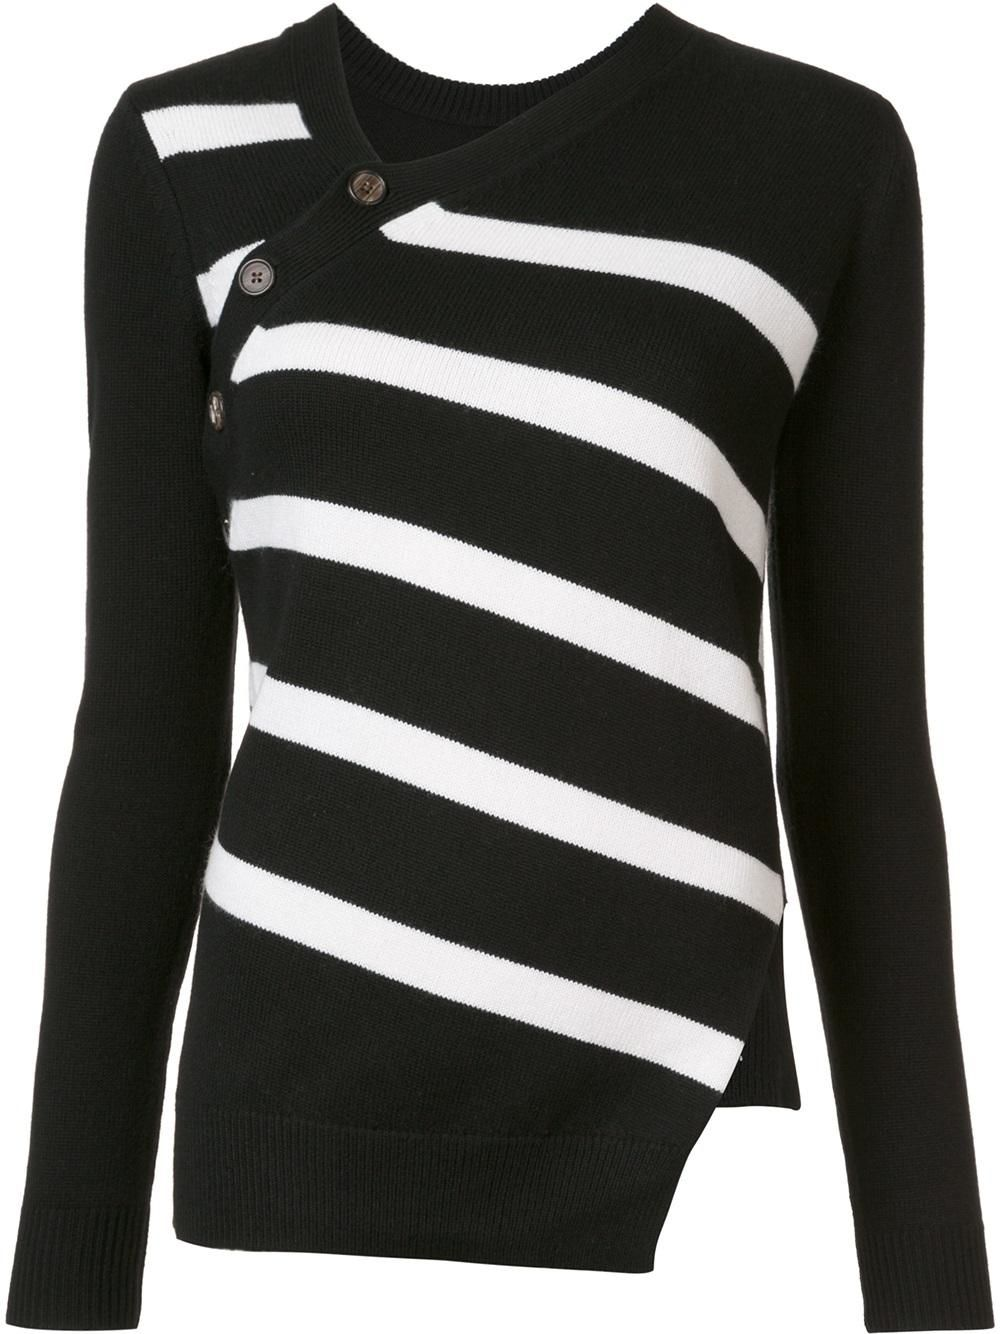 Discount Footaction Free Shipping Collections Proenza Schouler asymmetric striped sweater IcxOkKIO